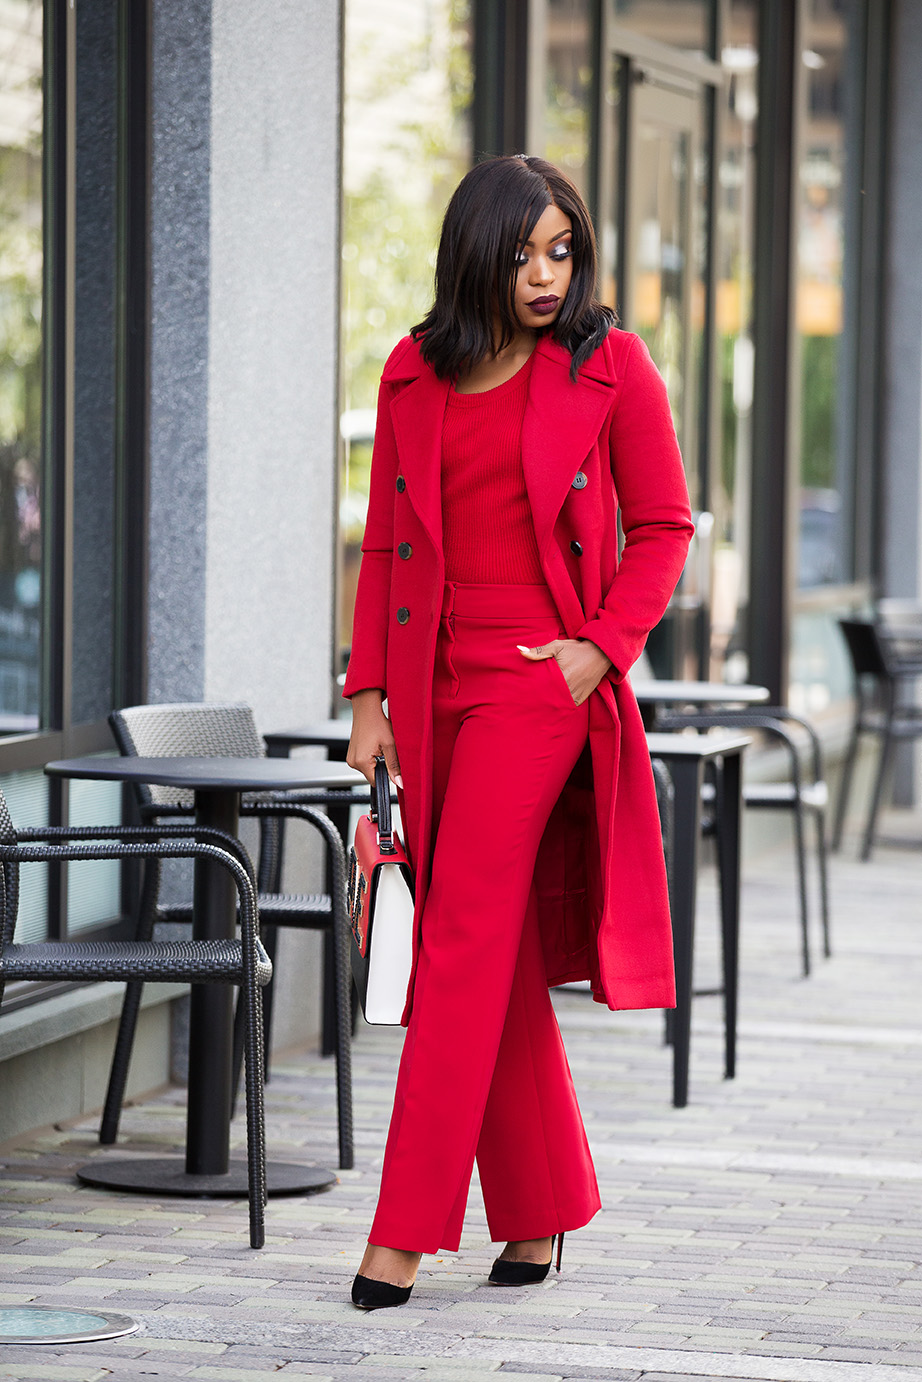 red on red trend, monochromatic look, www.jadore-fashion.com